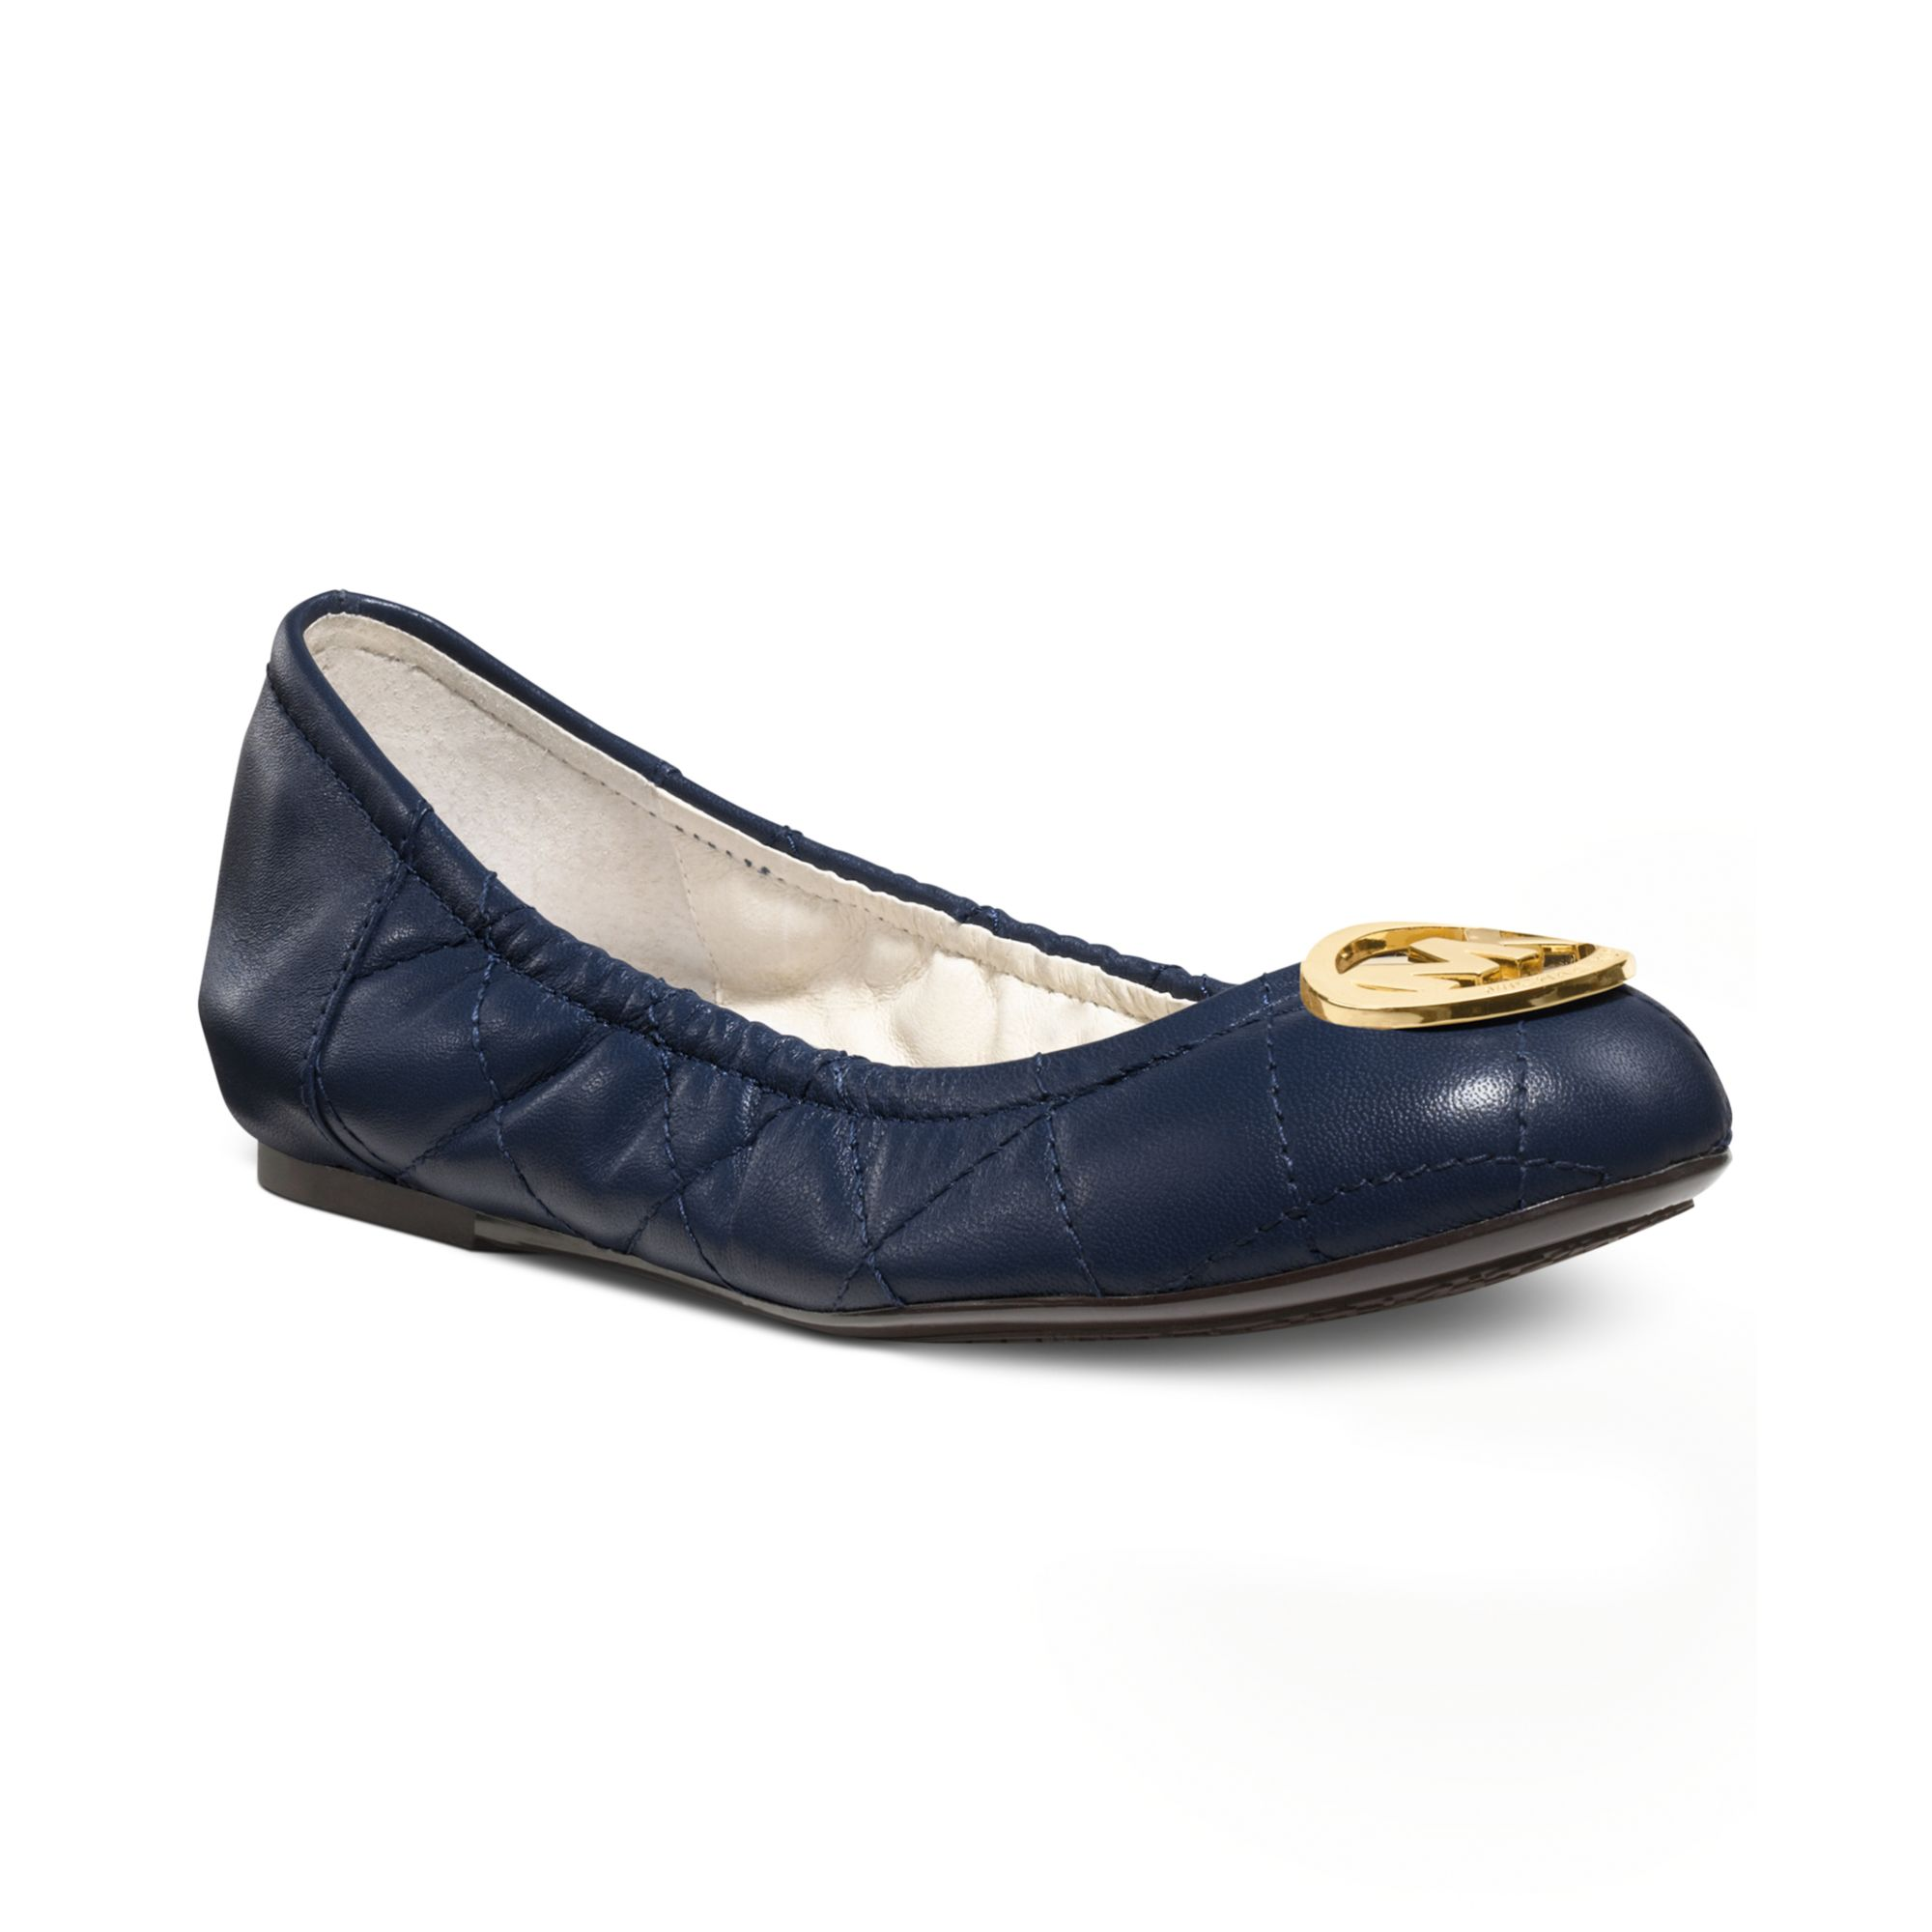 Michael Kors Shoes Fulton Quilted Ballet Flats